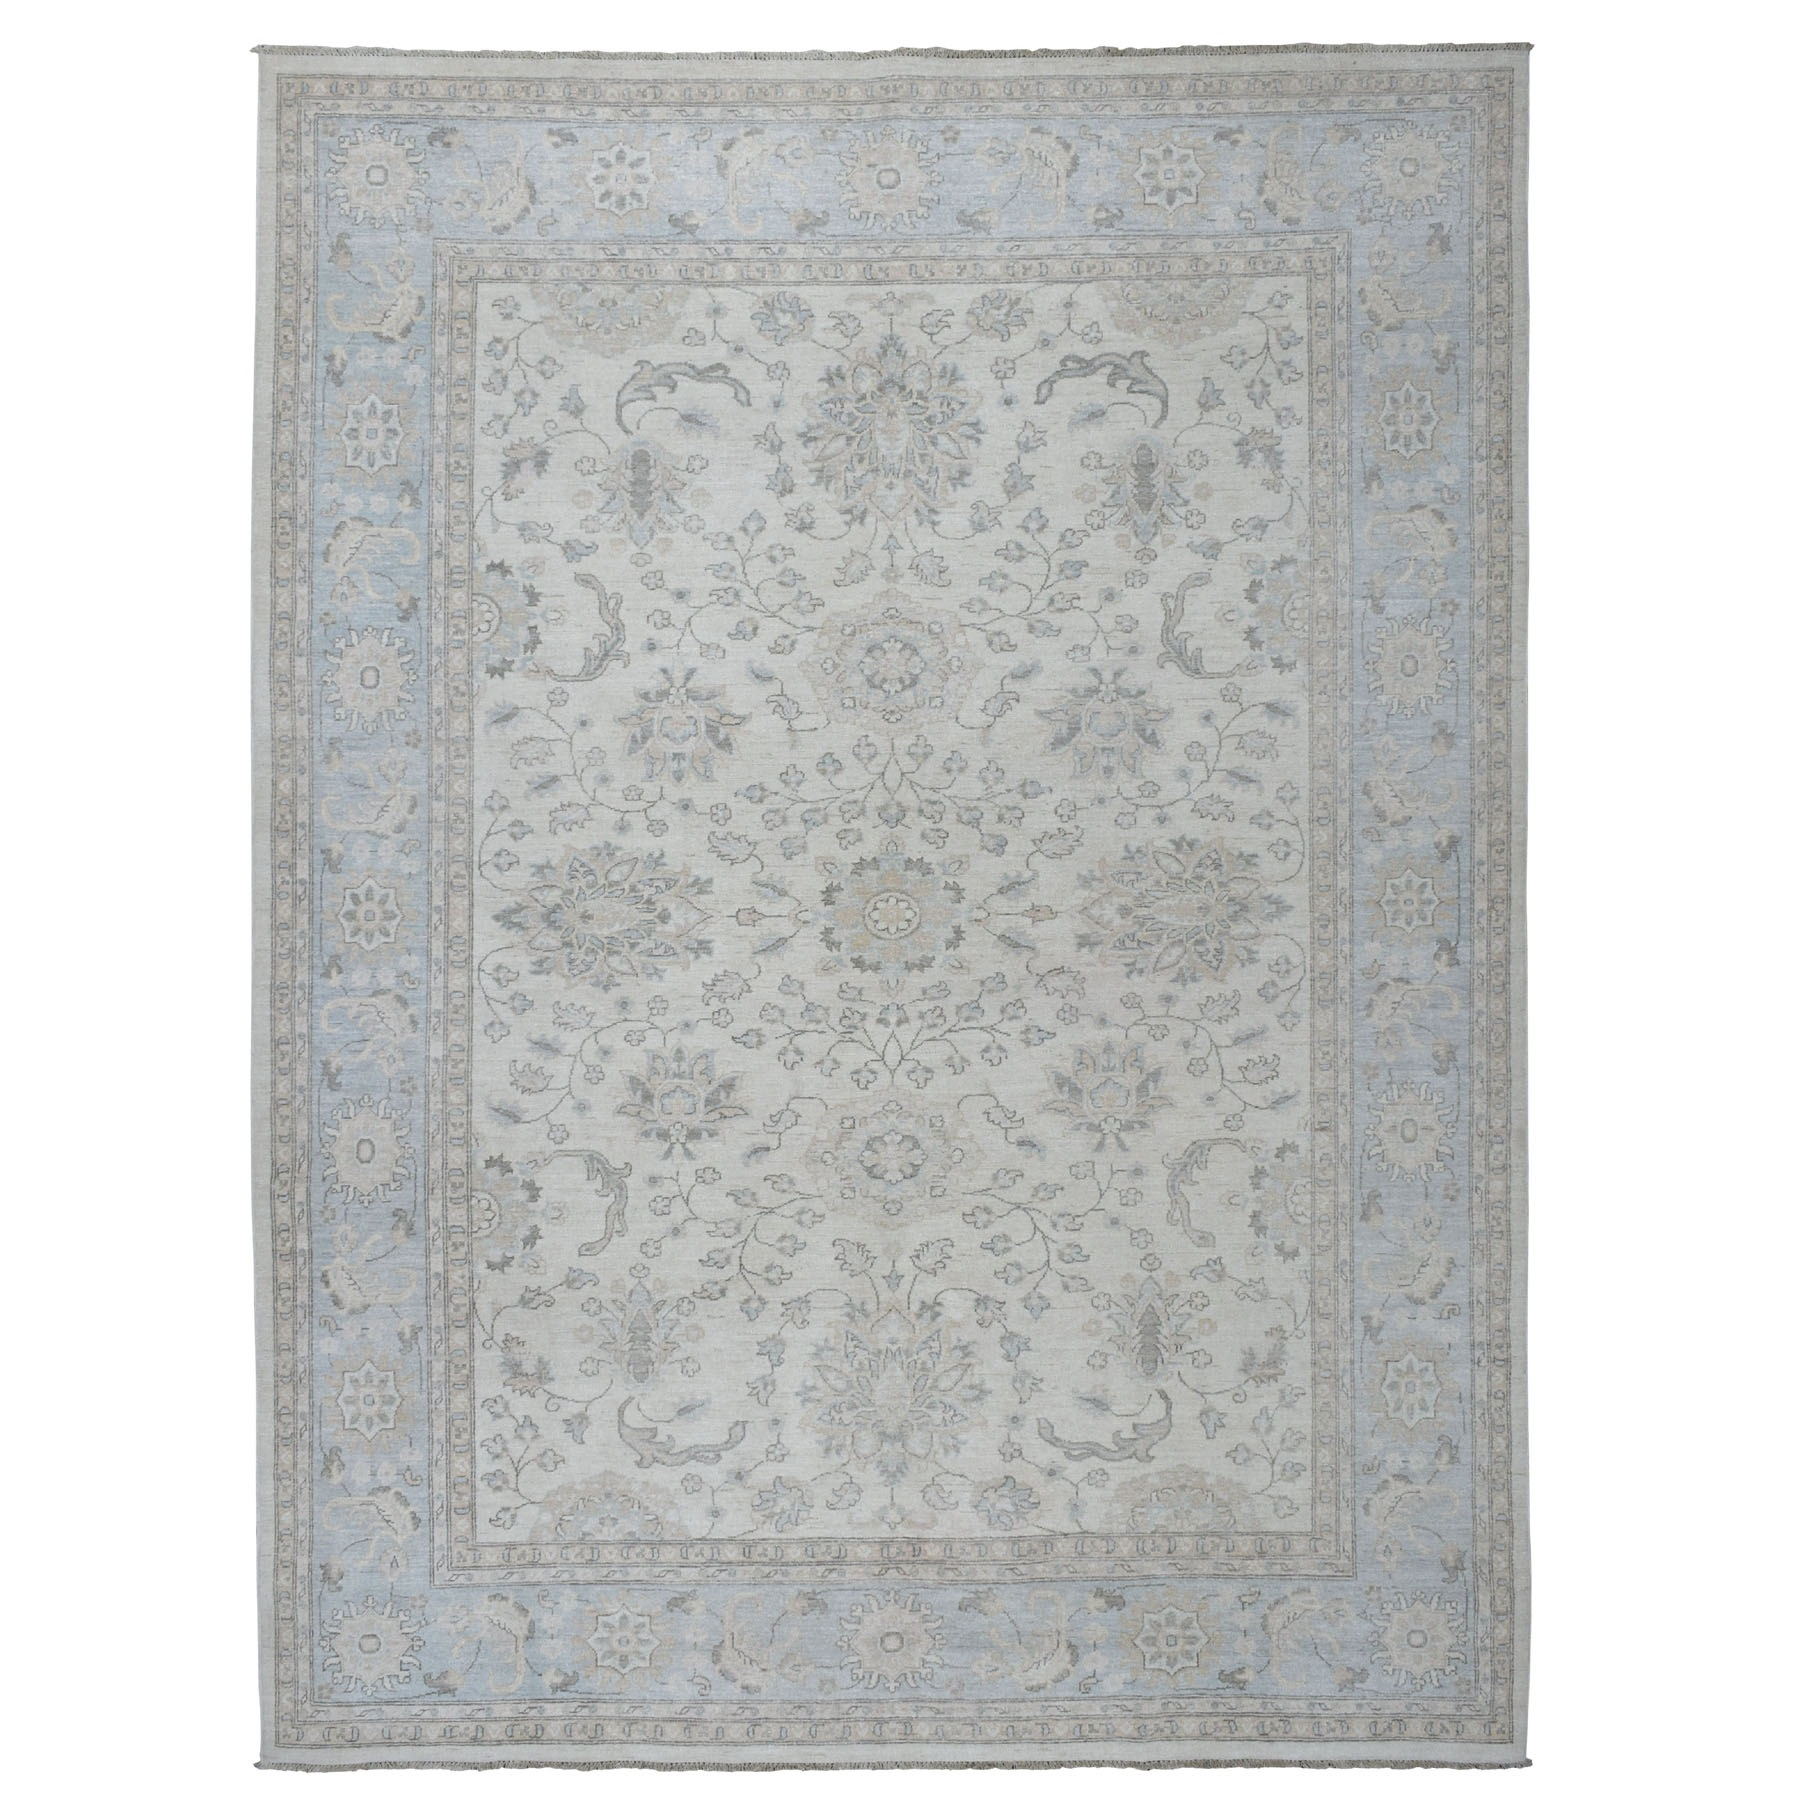 "8'10""X12' White Wash Peshawar Pure Wool Hand Knotted Oriental Rug moaeb8e6"